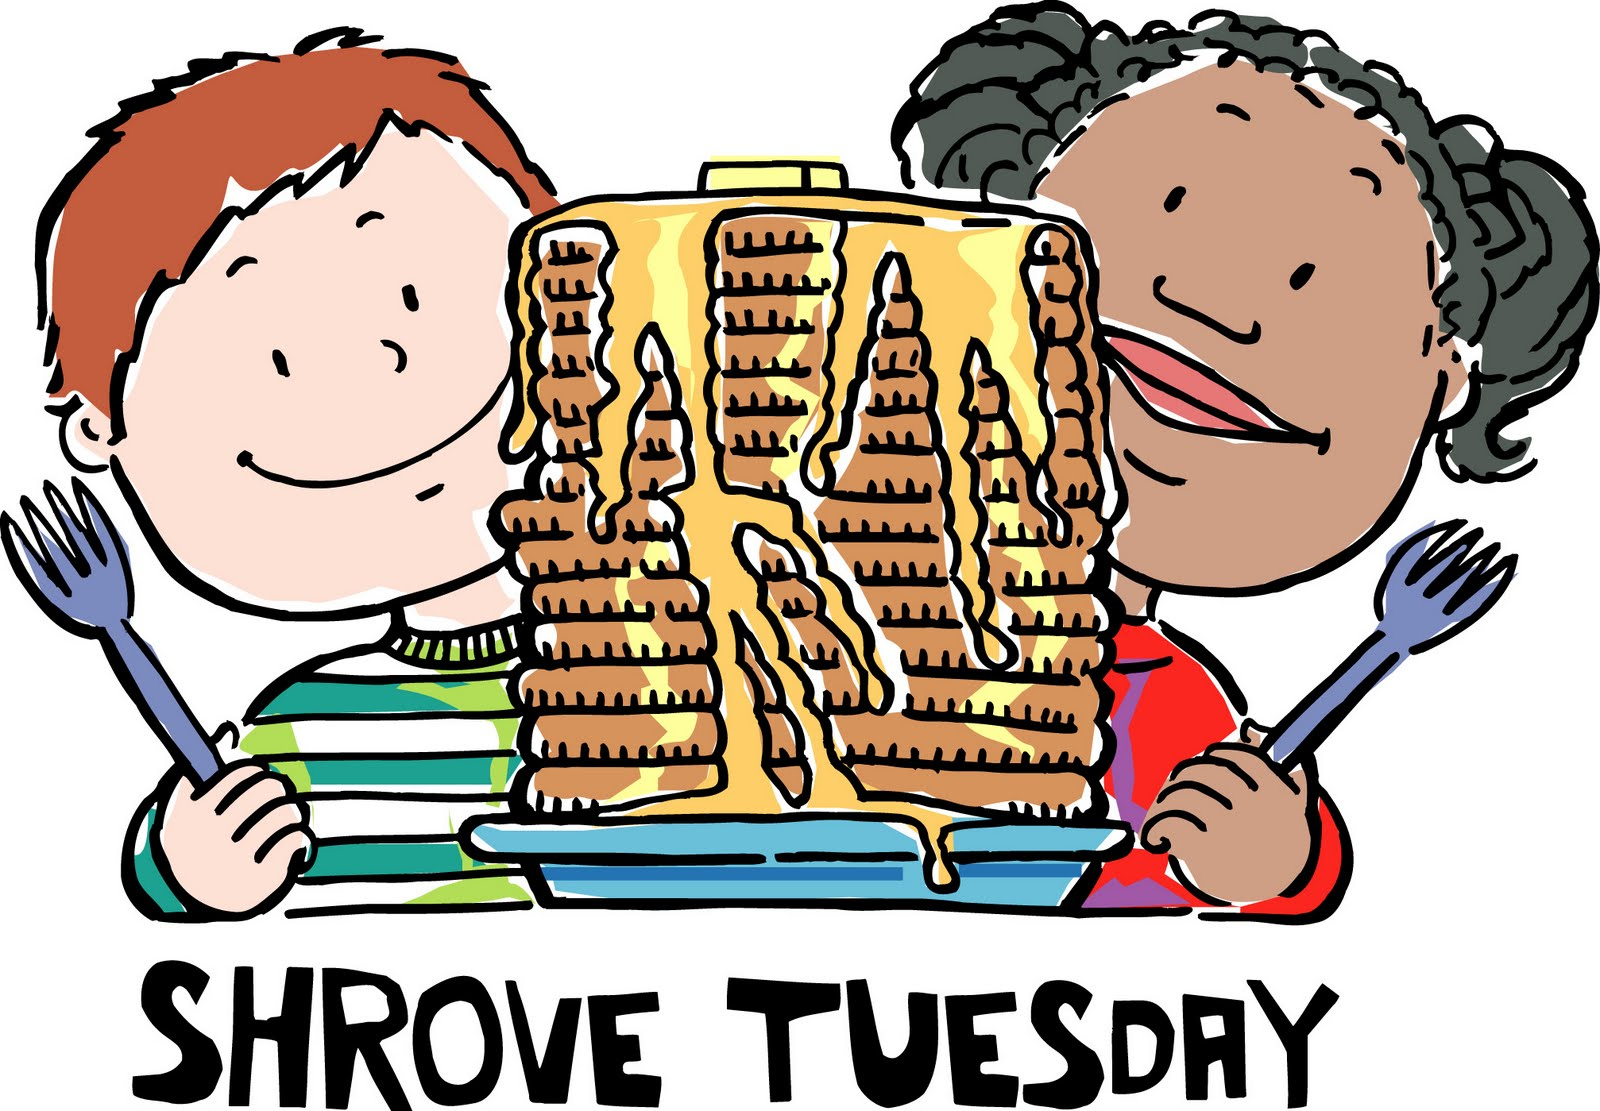 Free Shrove Tuesday Cliparts, Download Free Clip Art, Free Clip Art.